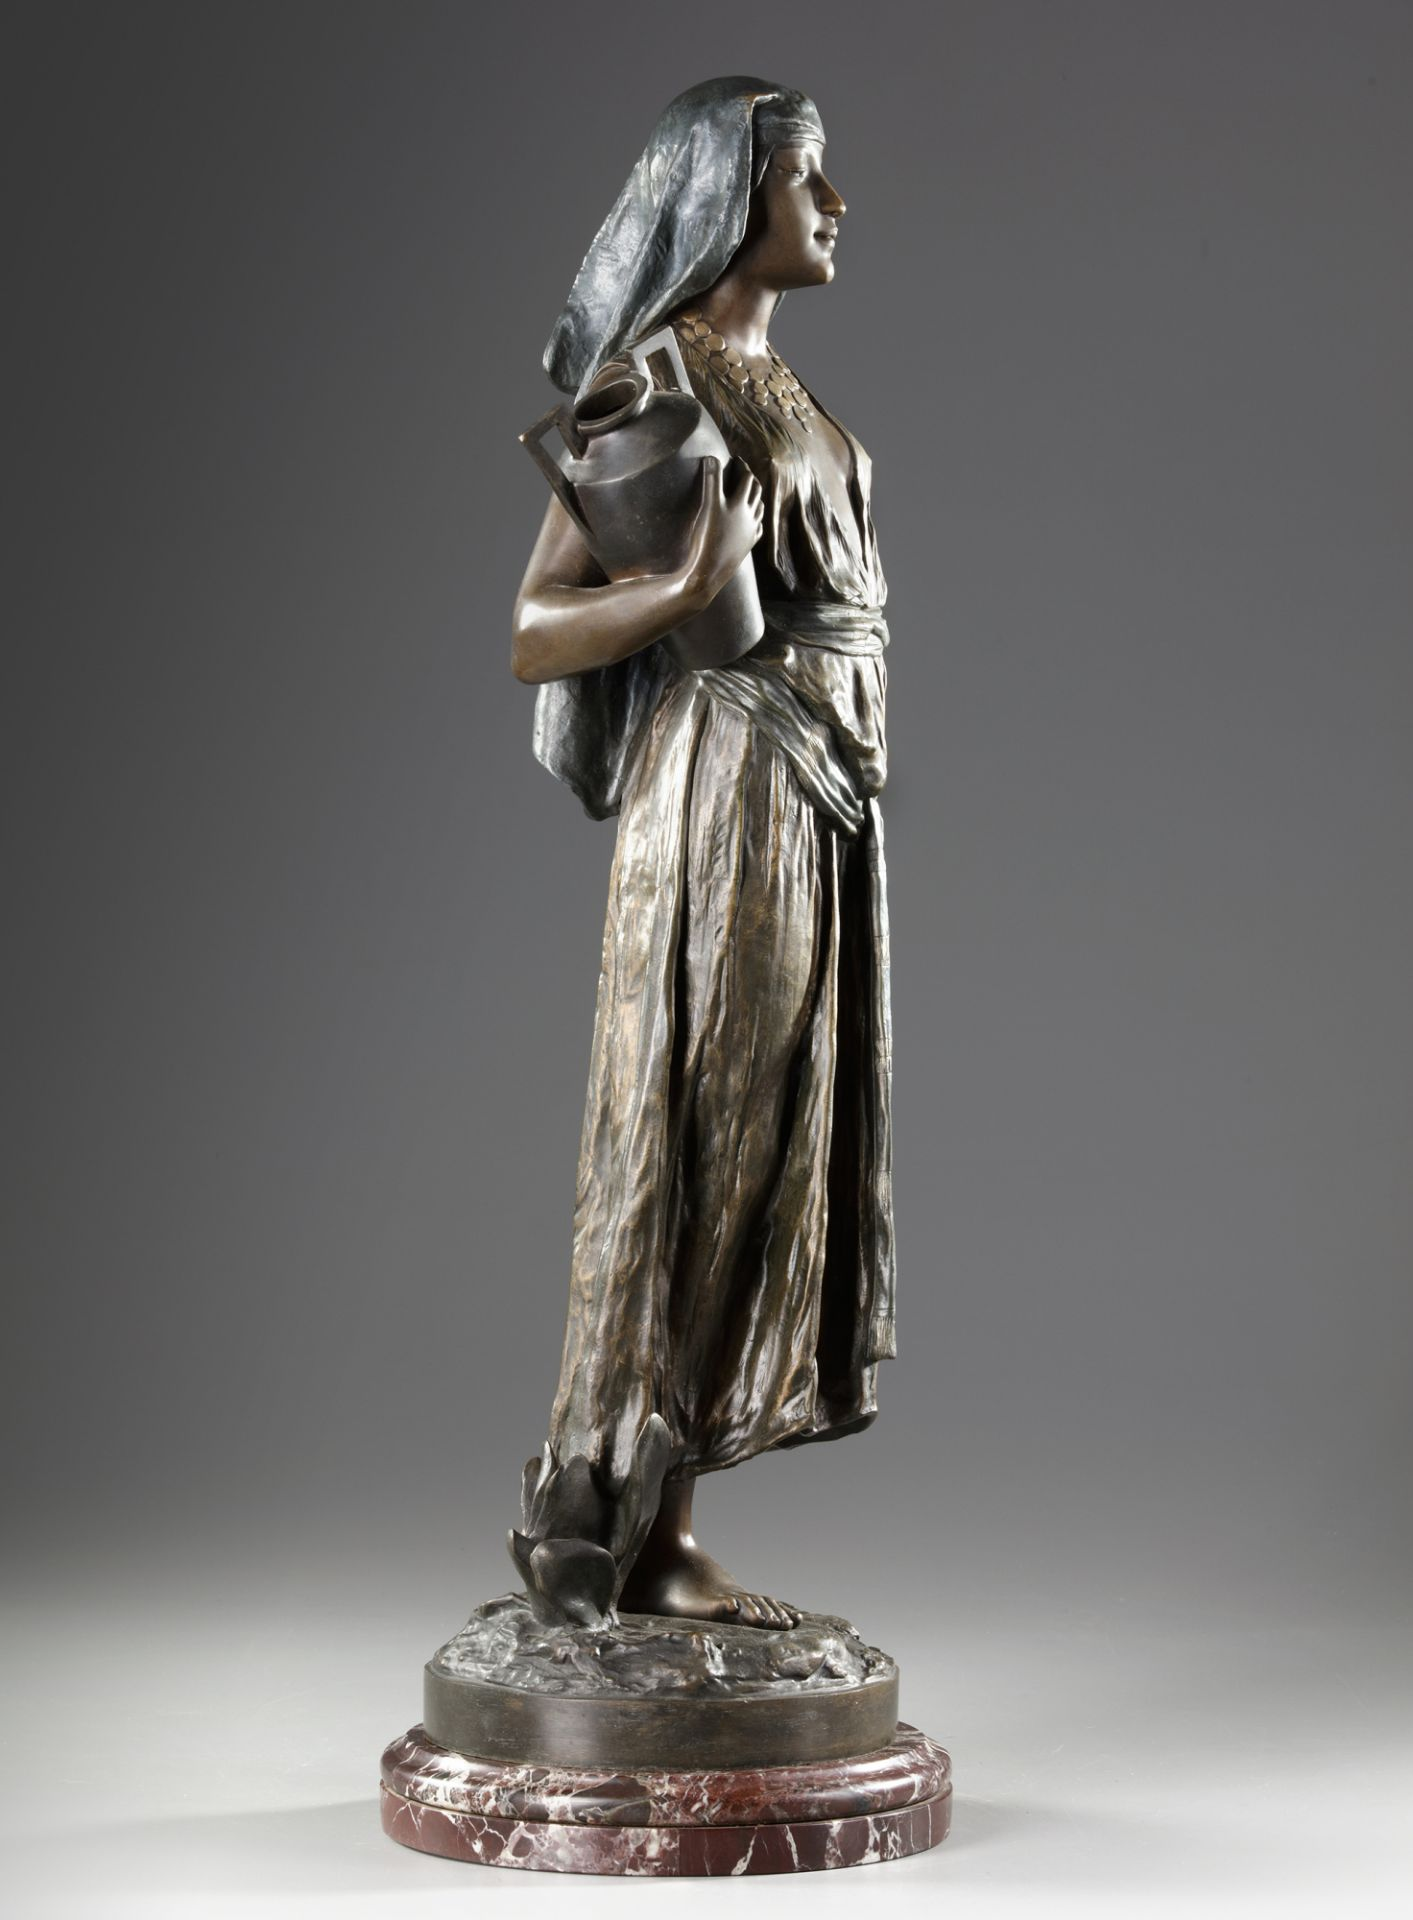 'THE WATER CARRIER', G. THILMANY, 20TH CENTURY - Image 3 of 6